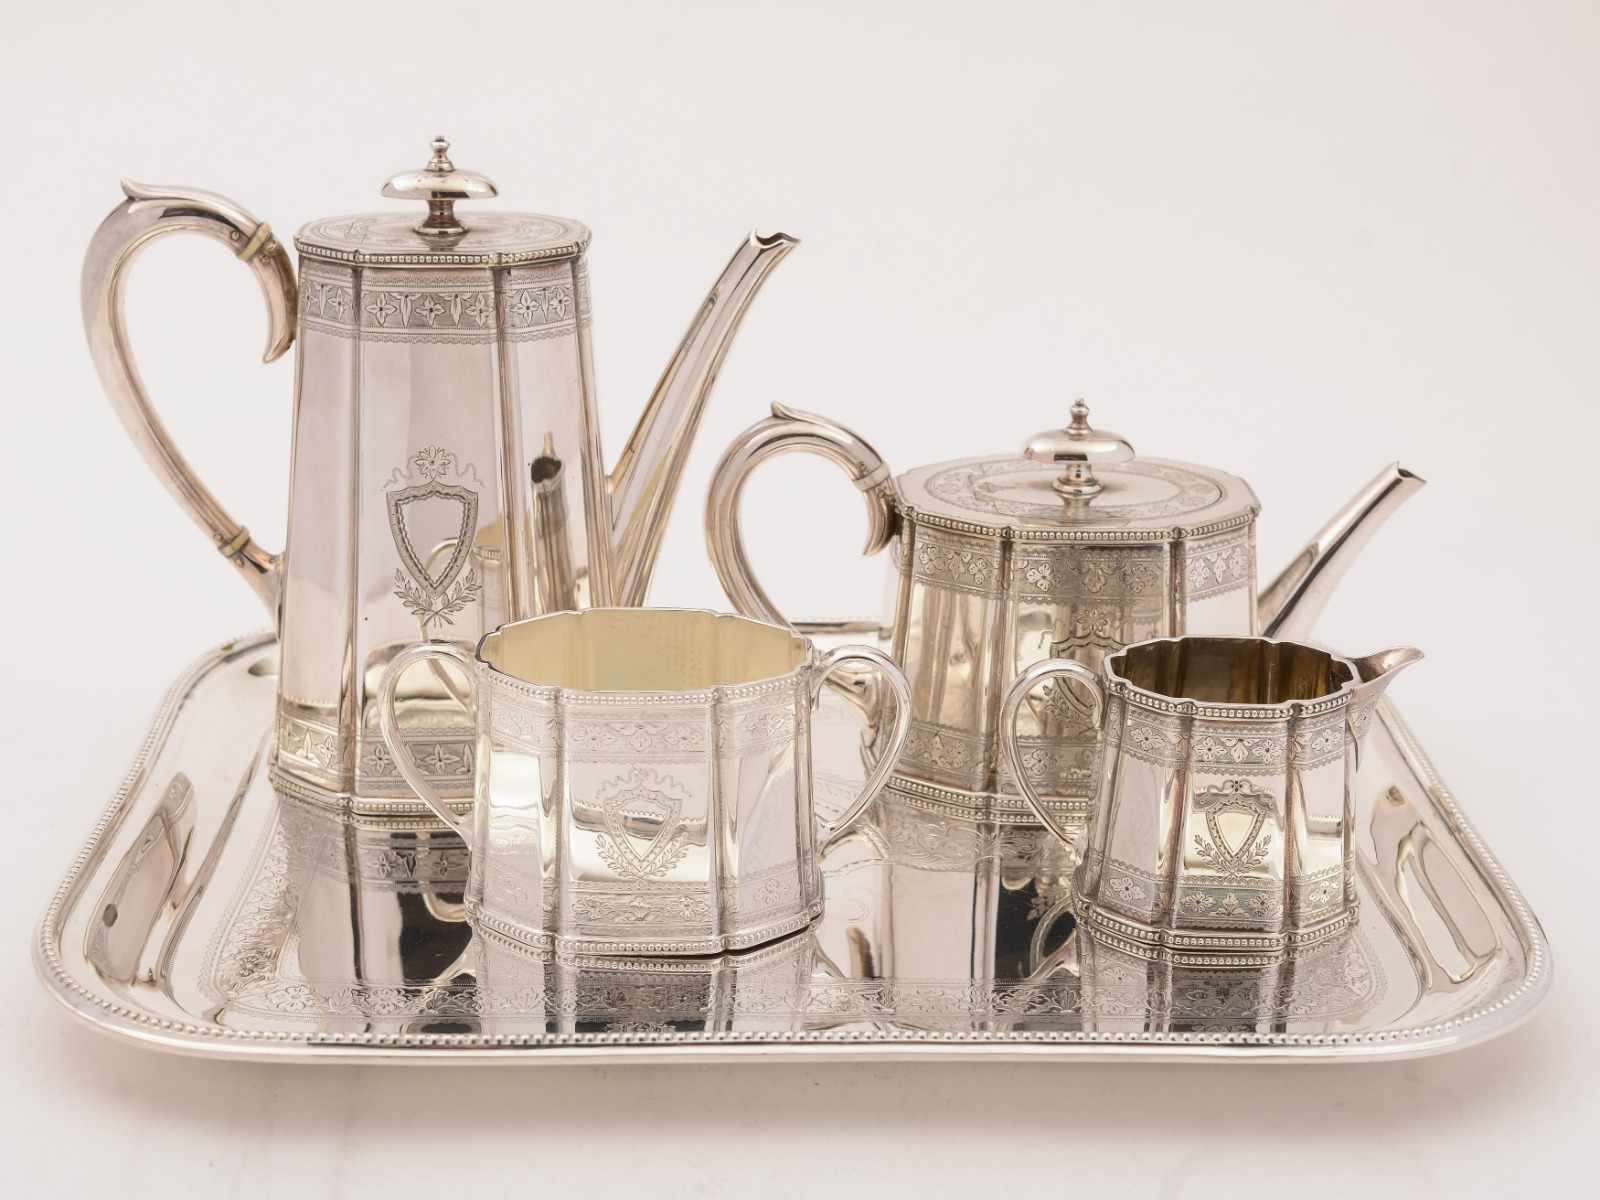 A silver tea and coffee set on a silver tray